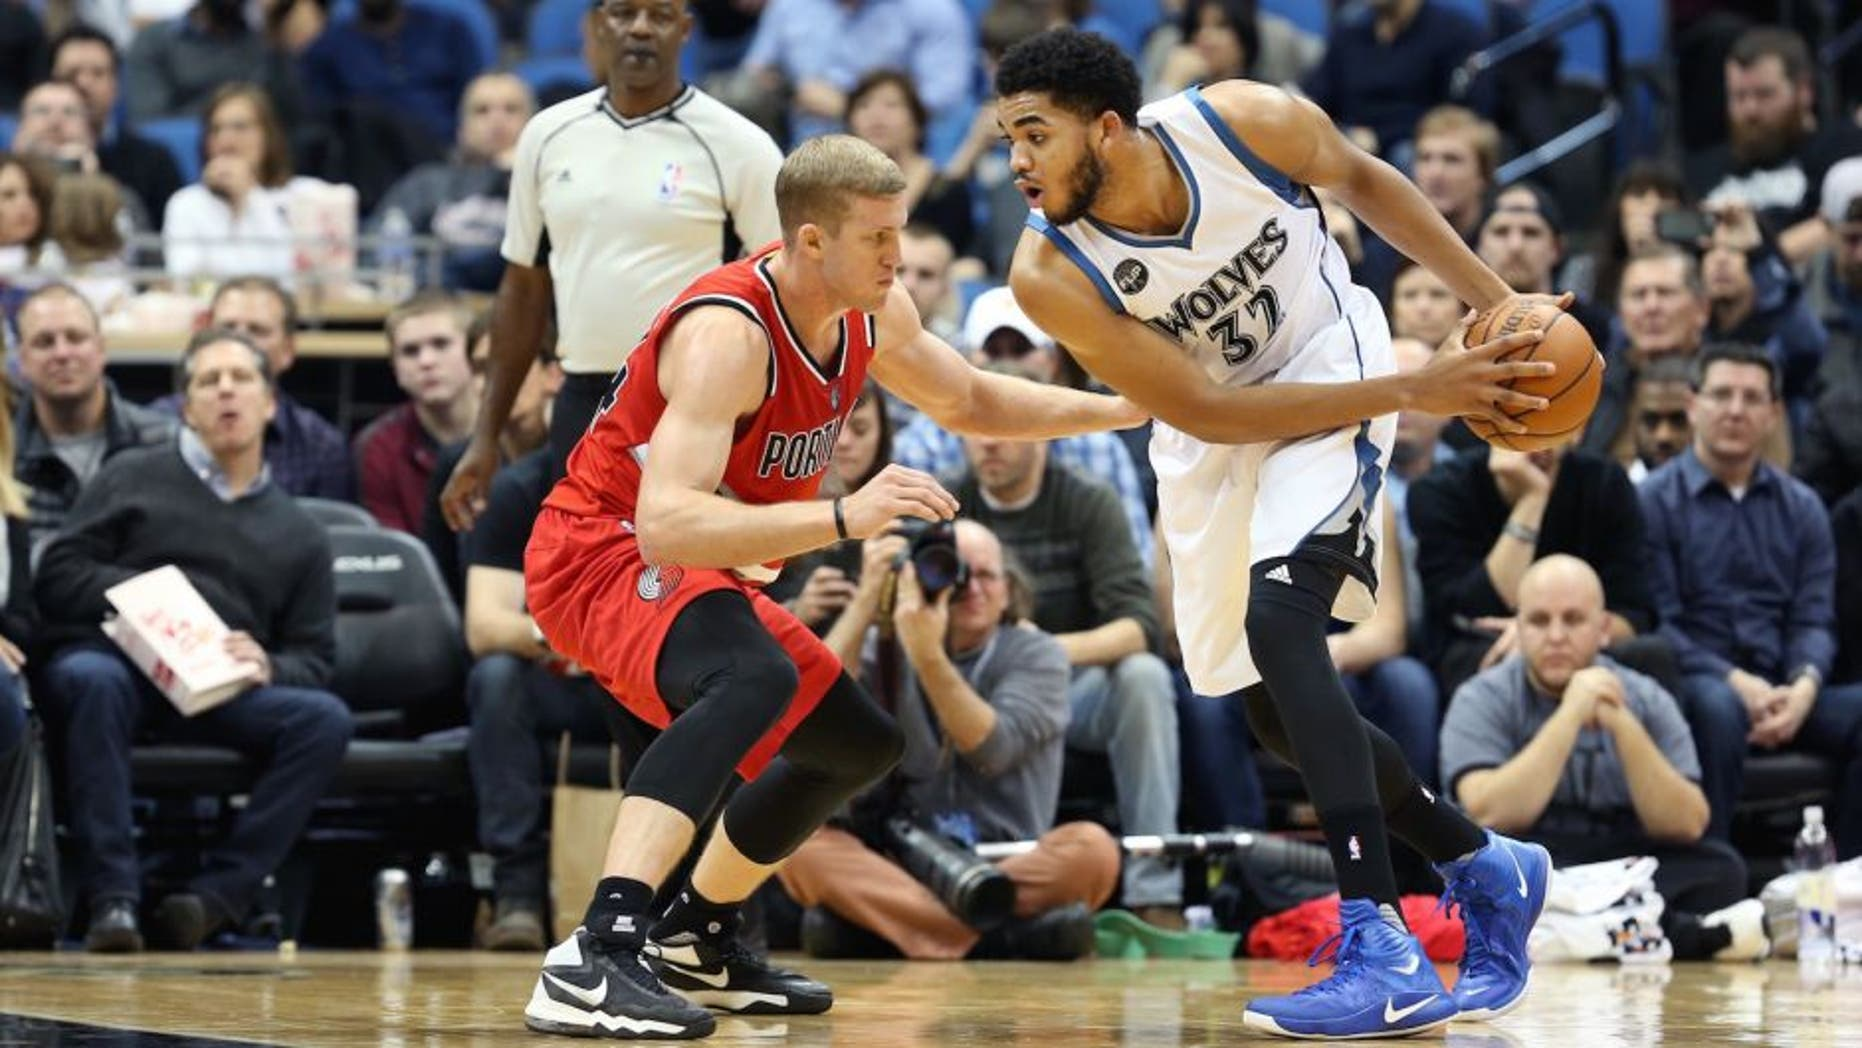 MINNEAPOLIS, MN - DECEMBER 5: Karl-Anthony Towns #32 of the Minnesota Timberwolves defends the ball against the Portland Trail Blazers during the game on December 5, 2015 at Target Center in Minneapolis, Minnesota. NOTE TO USER: User expressly acknowledges and agrees that, by downloading and or using this Photograph, user is consenting to the terms and conditions of the Getty Images License Agreement. Mandatory Copyright Notice: Copyright 2015 NBAE (Photo by Jordan Johnson/NBAE via Getty Images)